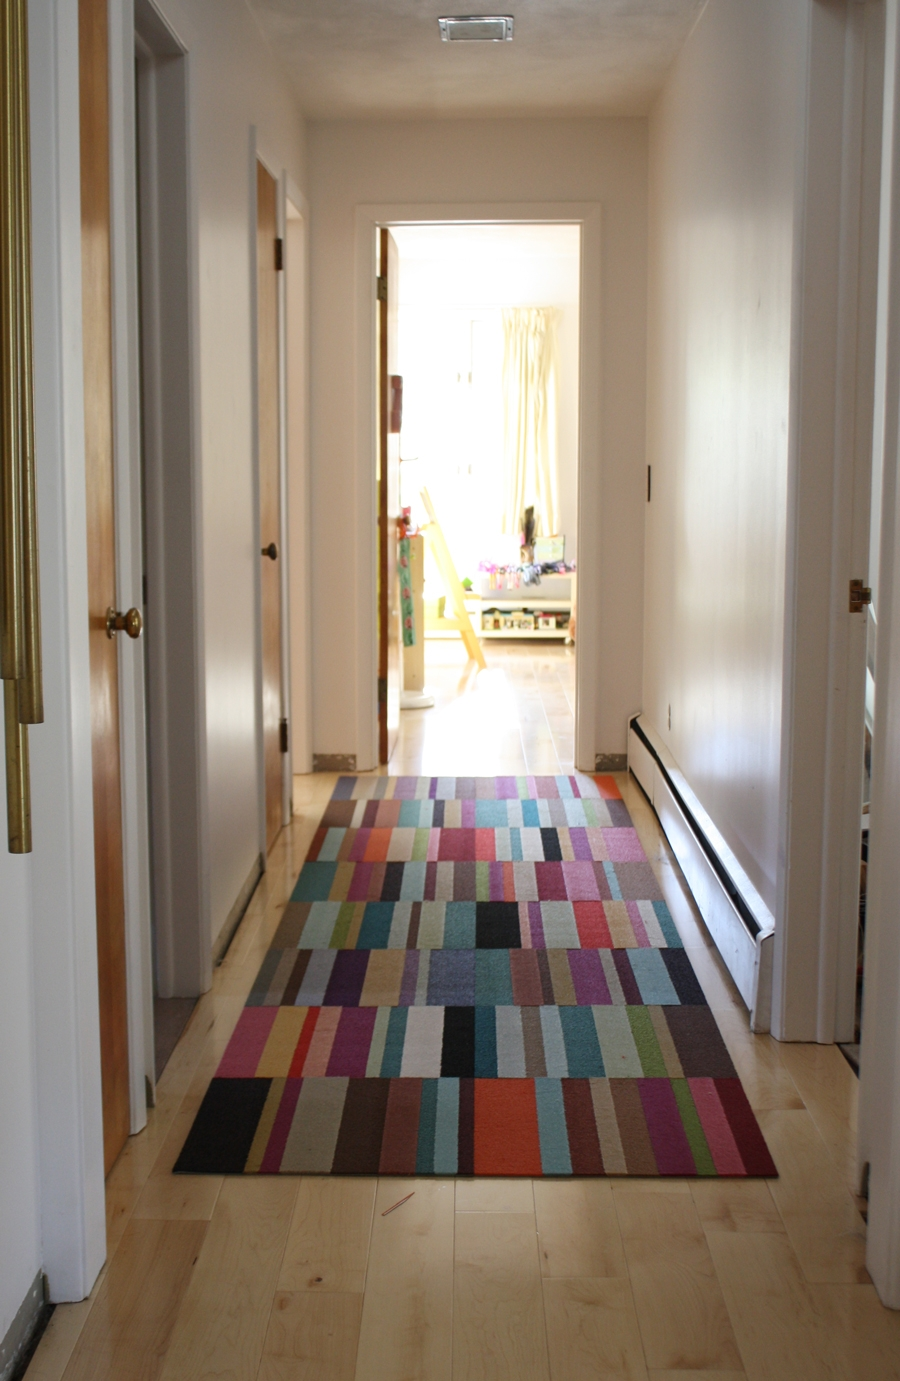 Flooring Hallway Runner Ideas Carpet Runners Hallway Runners With Regard To Cheap Hallway Runners (#5 of 20)